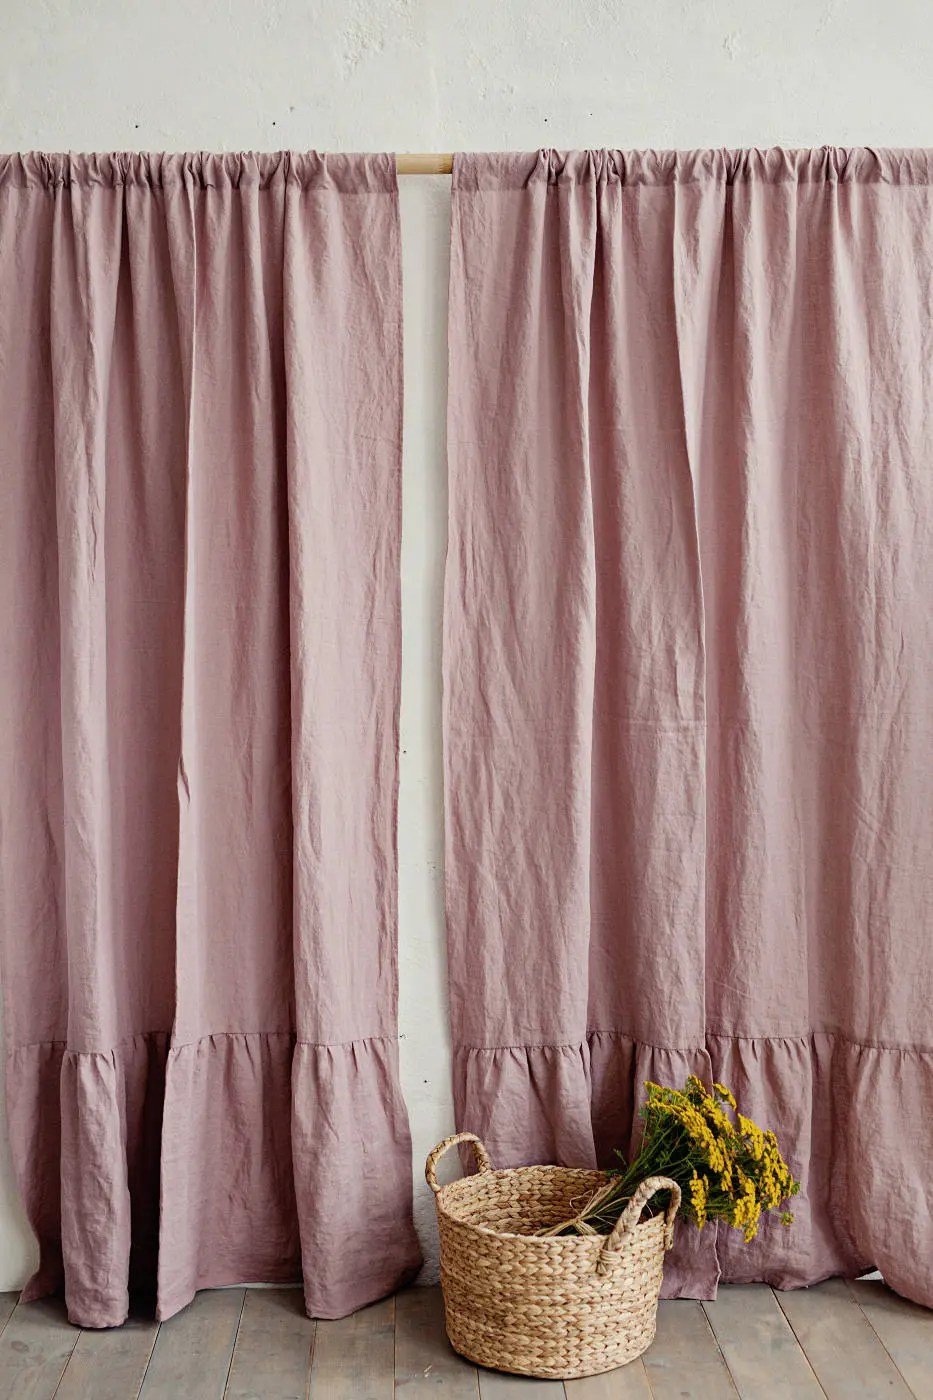 Ruffle Curtain Panel Rod Pocket Linen Curtain Panel With Ruffles Washed Linen Ruffled Curtain Drapes